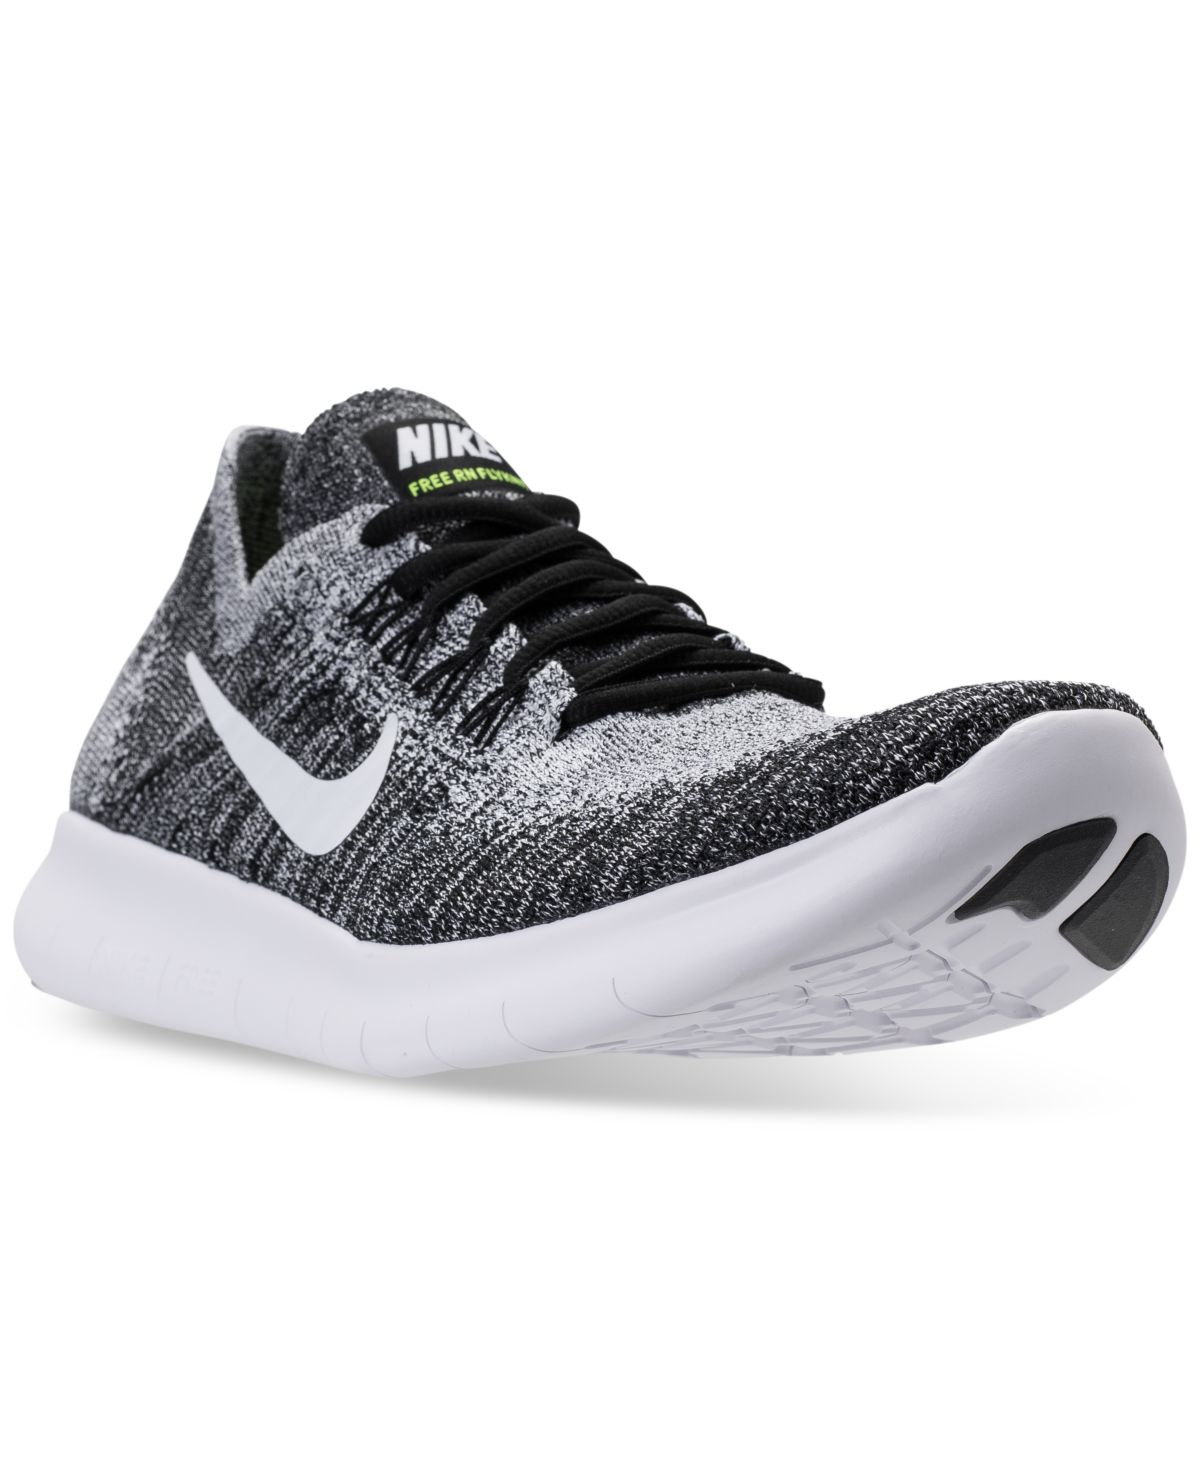 nike shoes with arch support customizable laptops for gaming 941